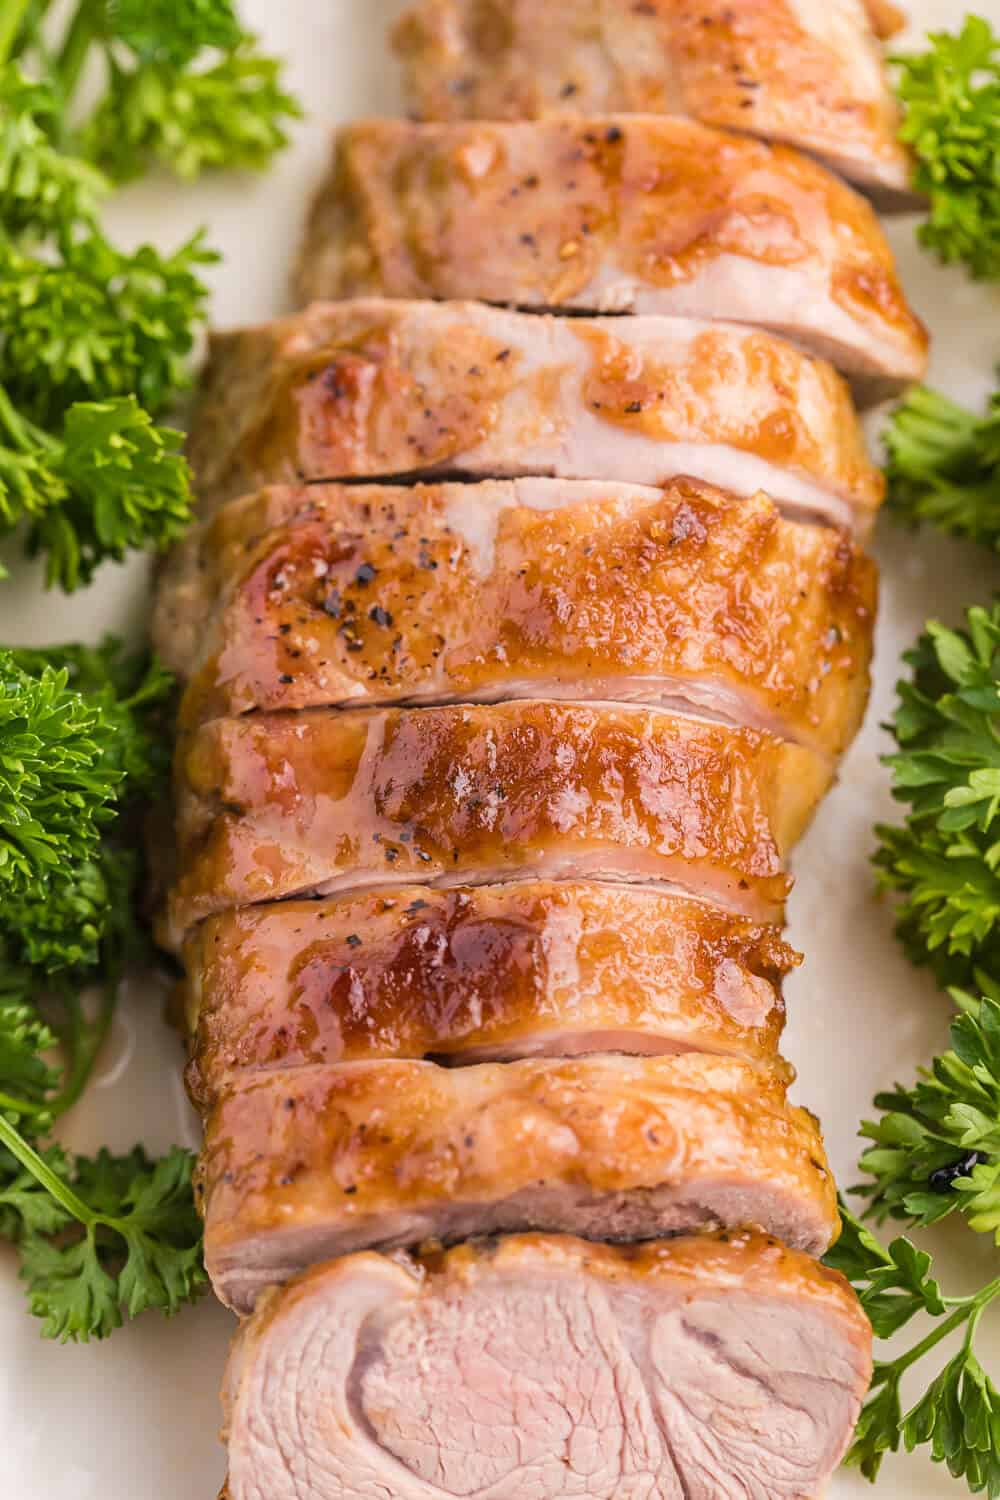 Brown Sugar Dijon Pork Tenderloin - Only two ingredients for this delicious dinner recipe! This sweet and savory glaze goes perfectly with the tender, juicy pork.